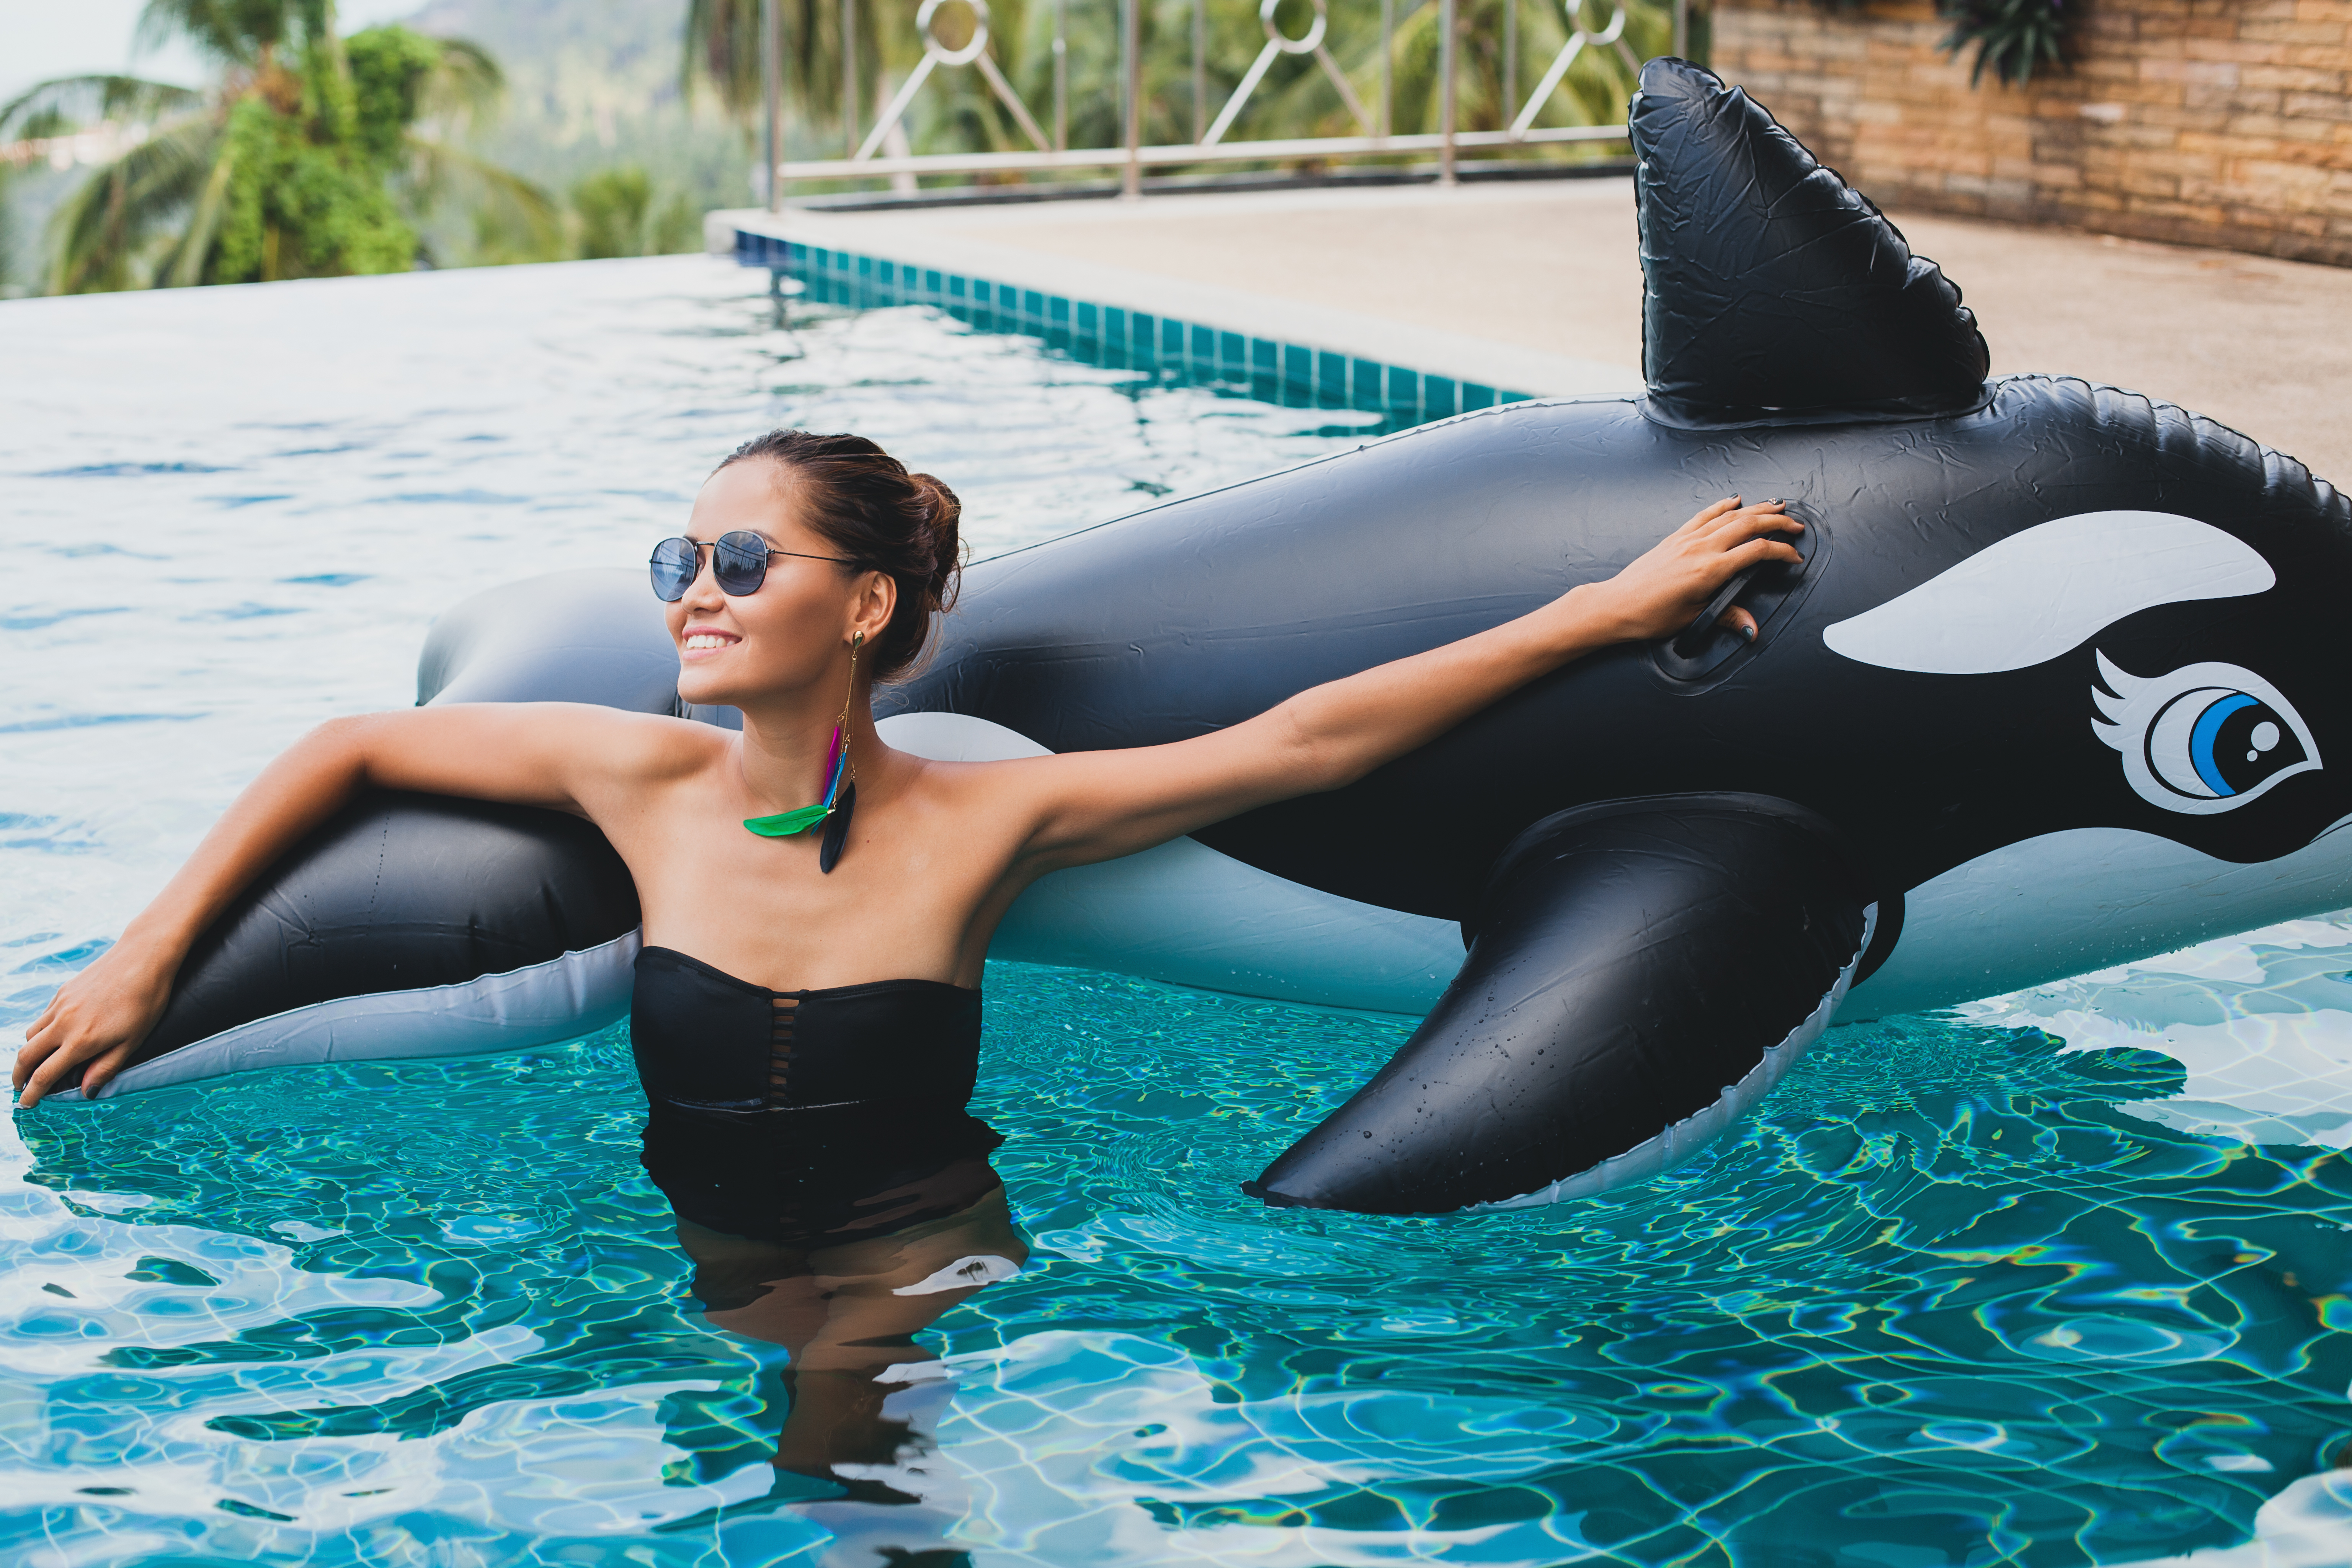 Swimming Pool Games to Play If You\'re Tired of Just Sunbathing